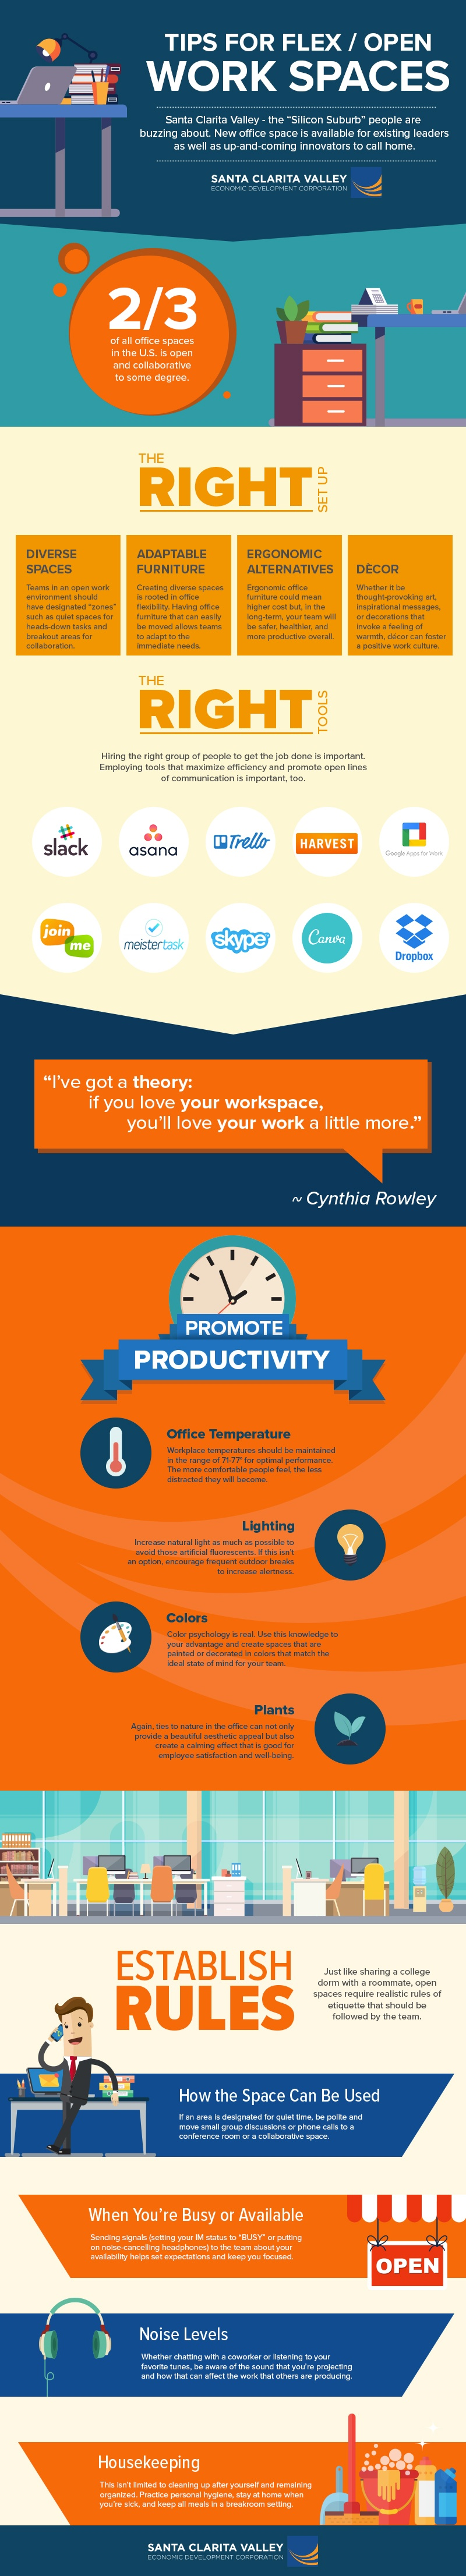 SCVEDC - Open Work Spaces - Infographic 9.18.17.jpg